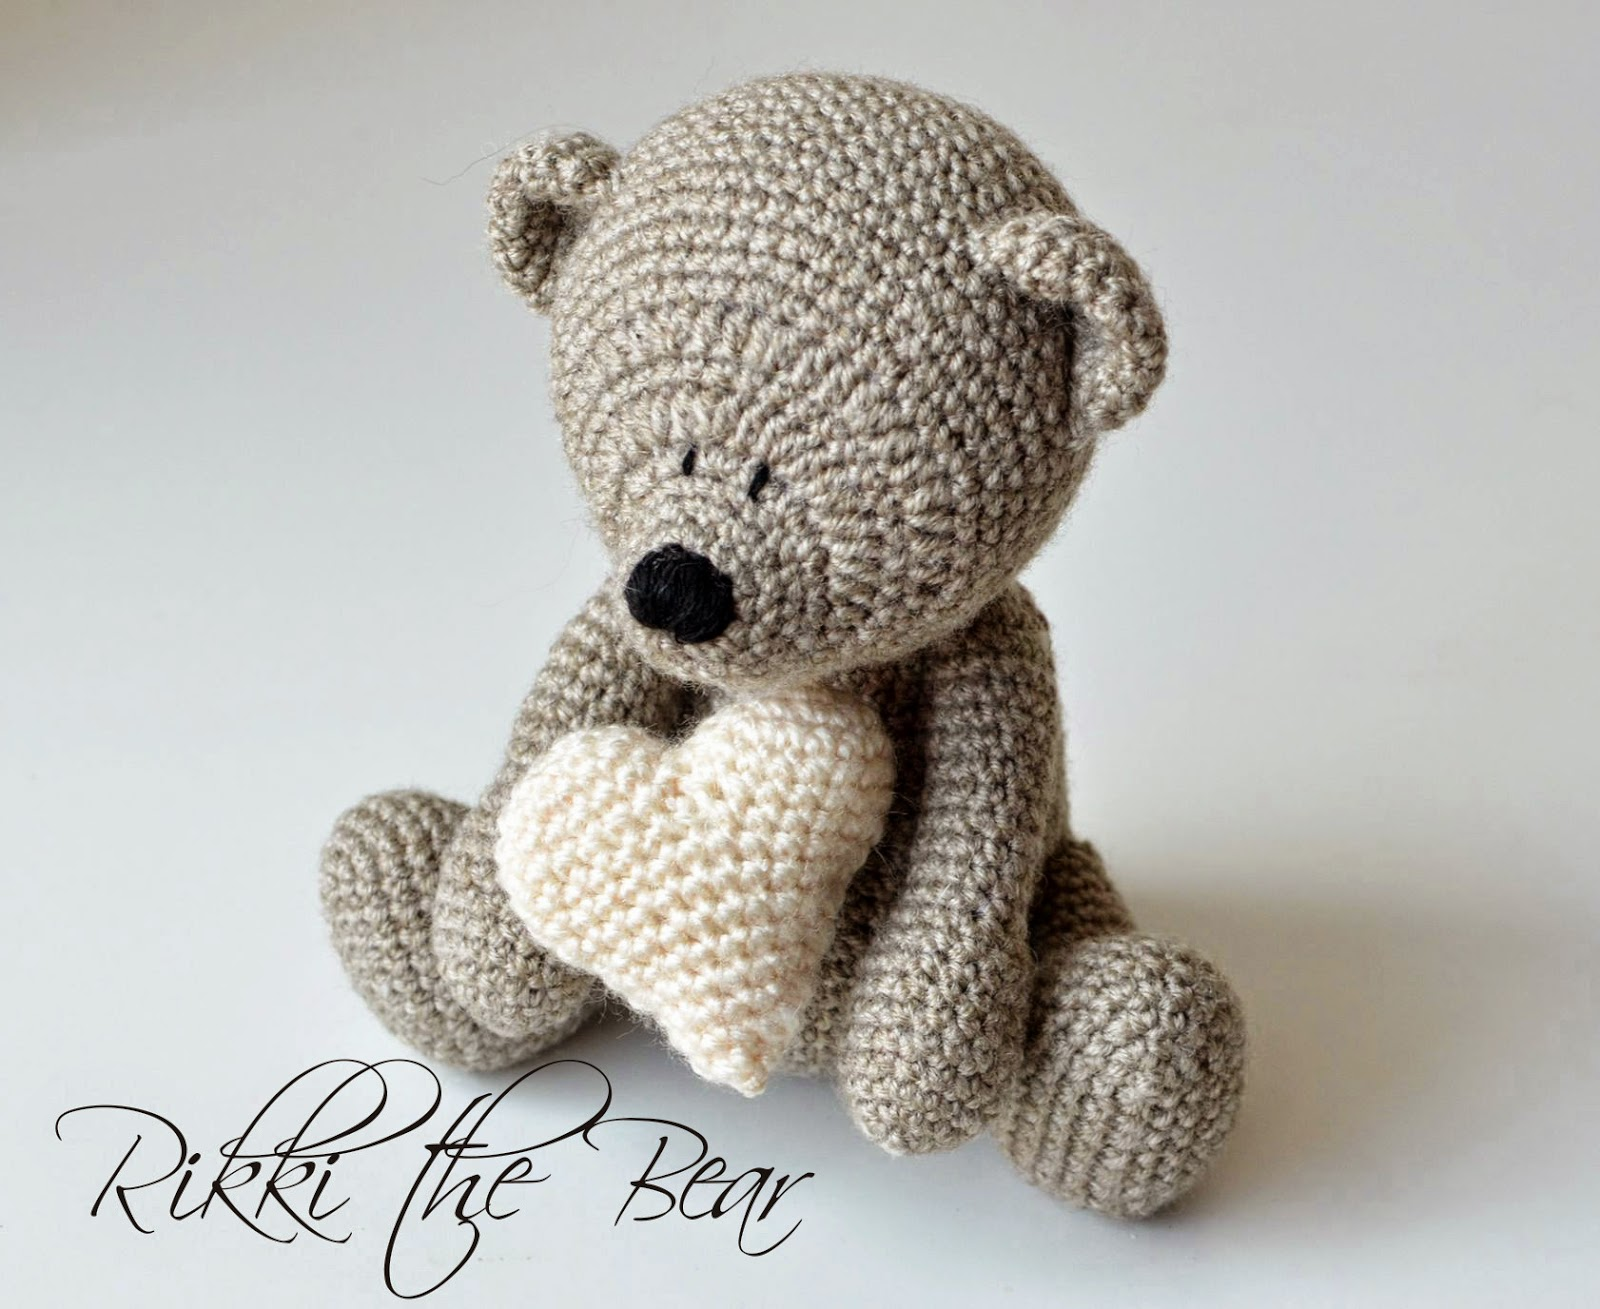 Amigurumi koala with heart pattern | Crochet patterns amigurumi ... | 1309x1600